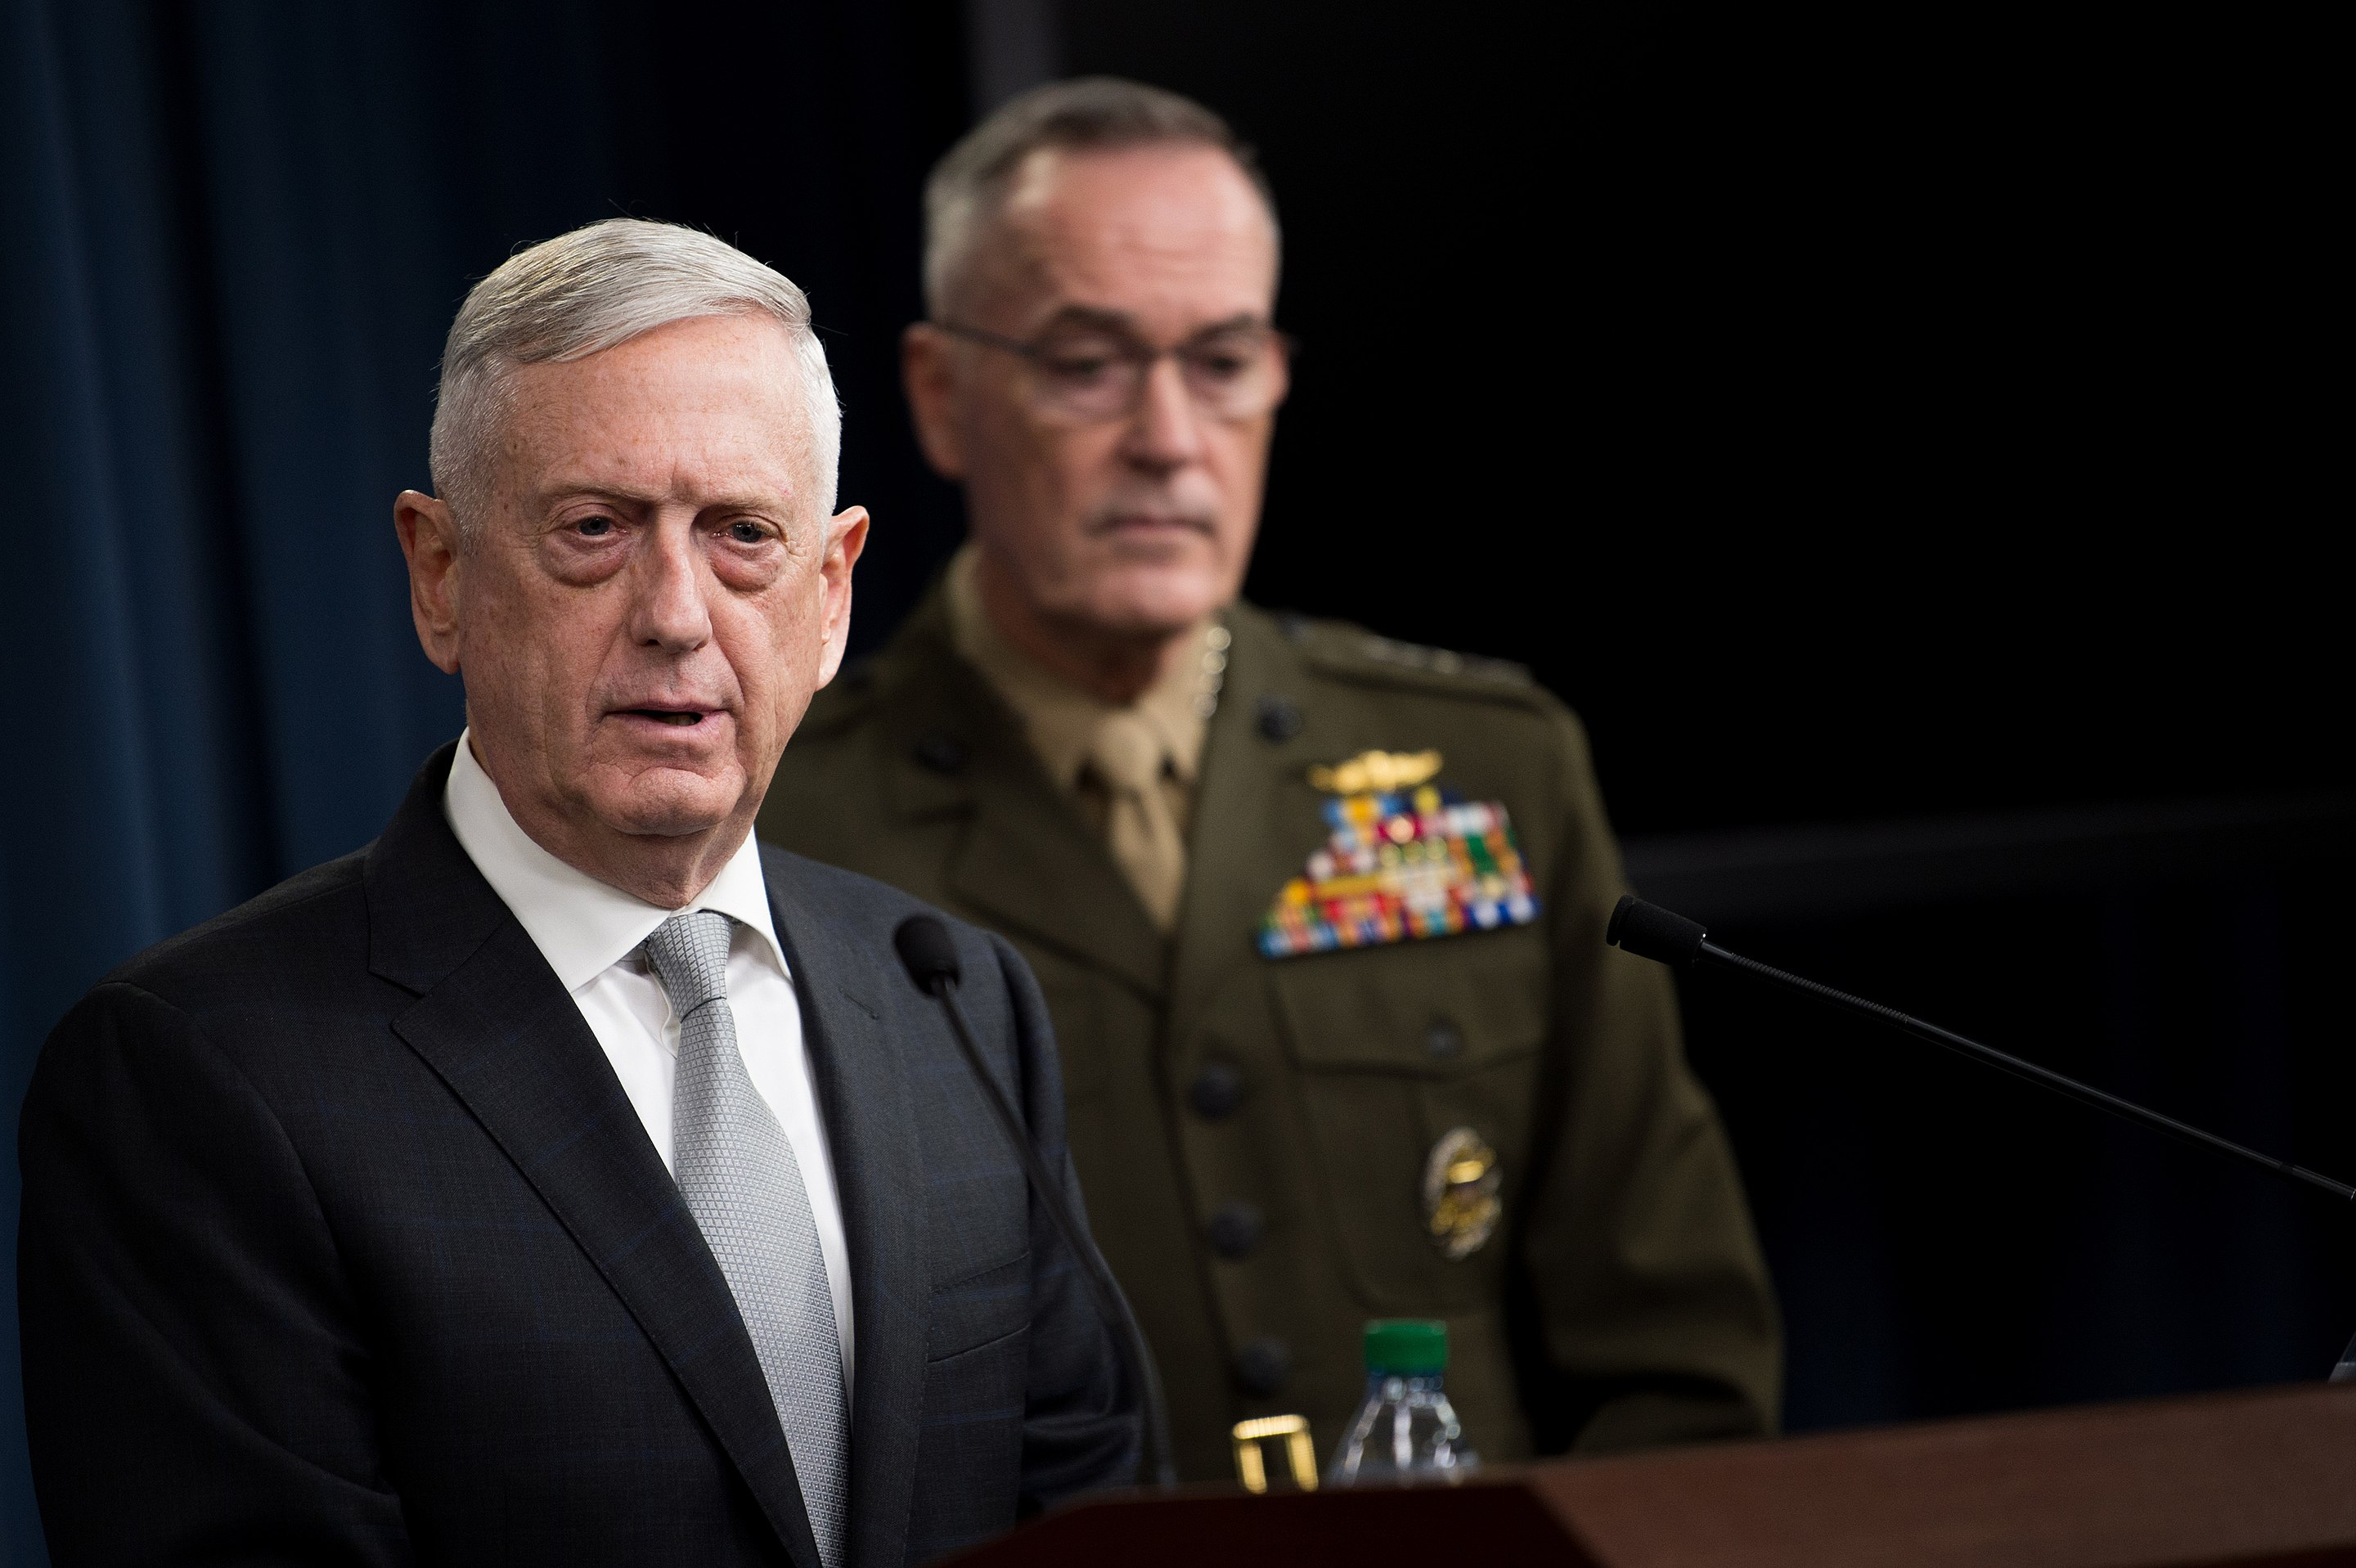 James Mattis and Joseph Dunford briefing reporters on the April 14 military operation against Syria (Wikimedia Commons)